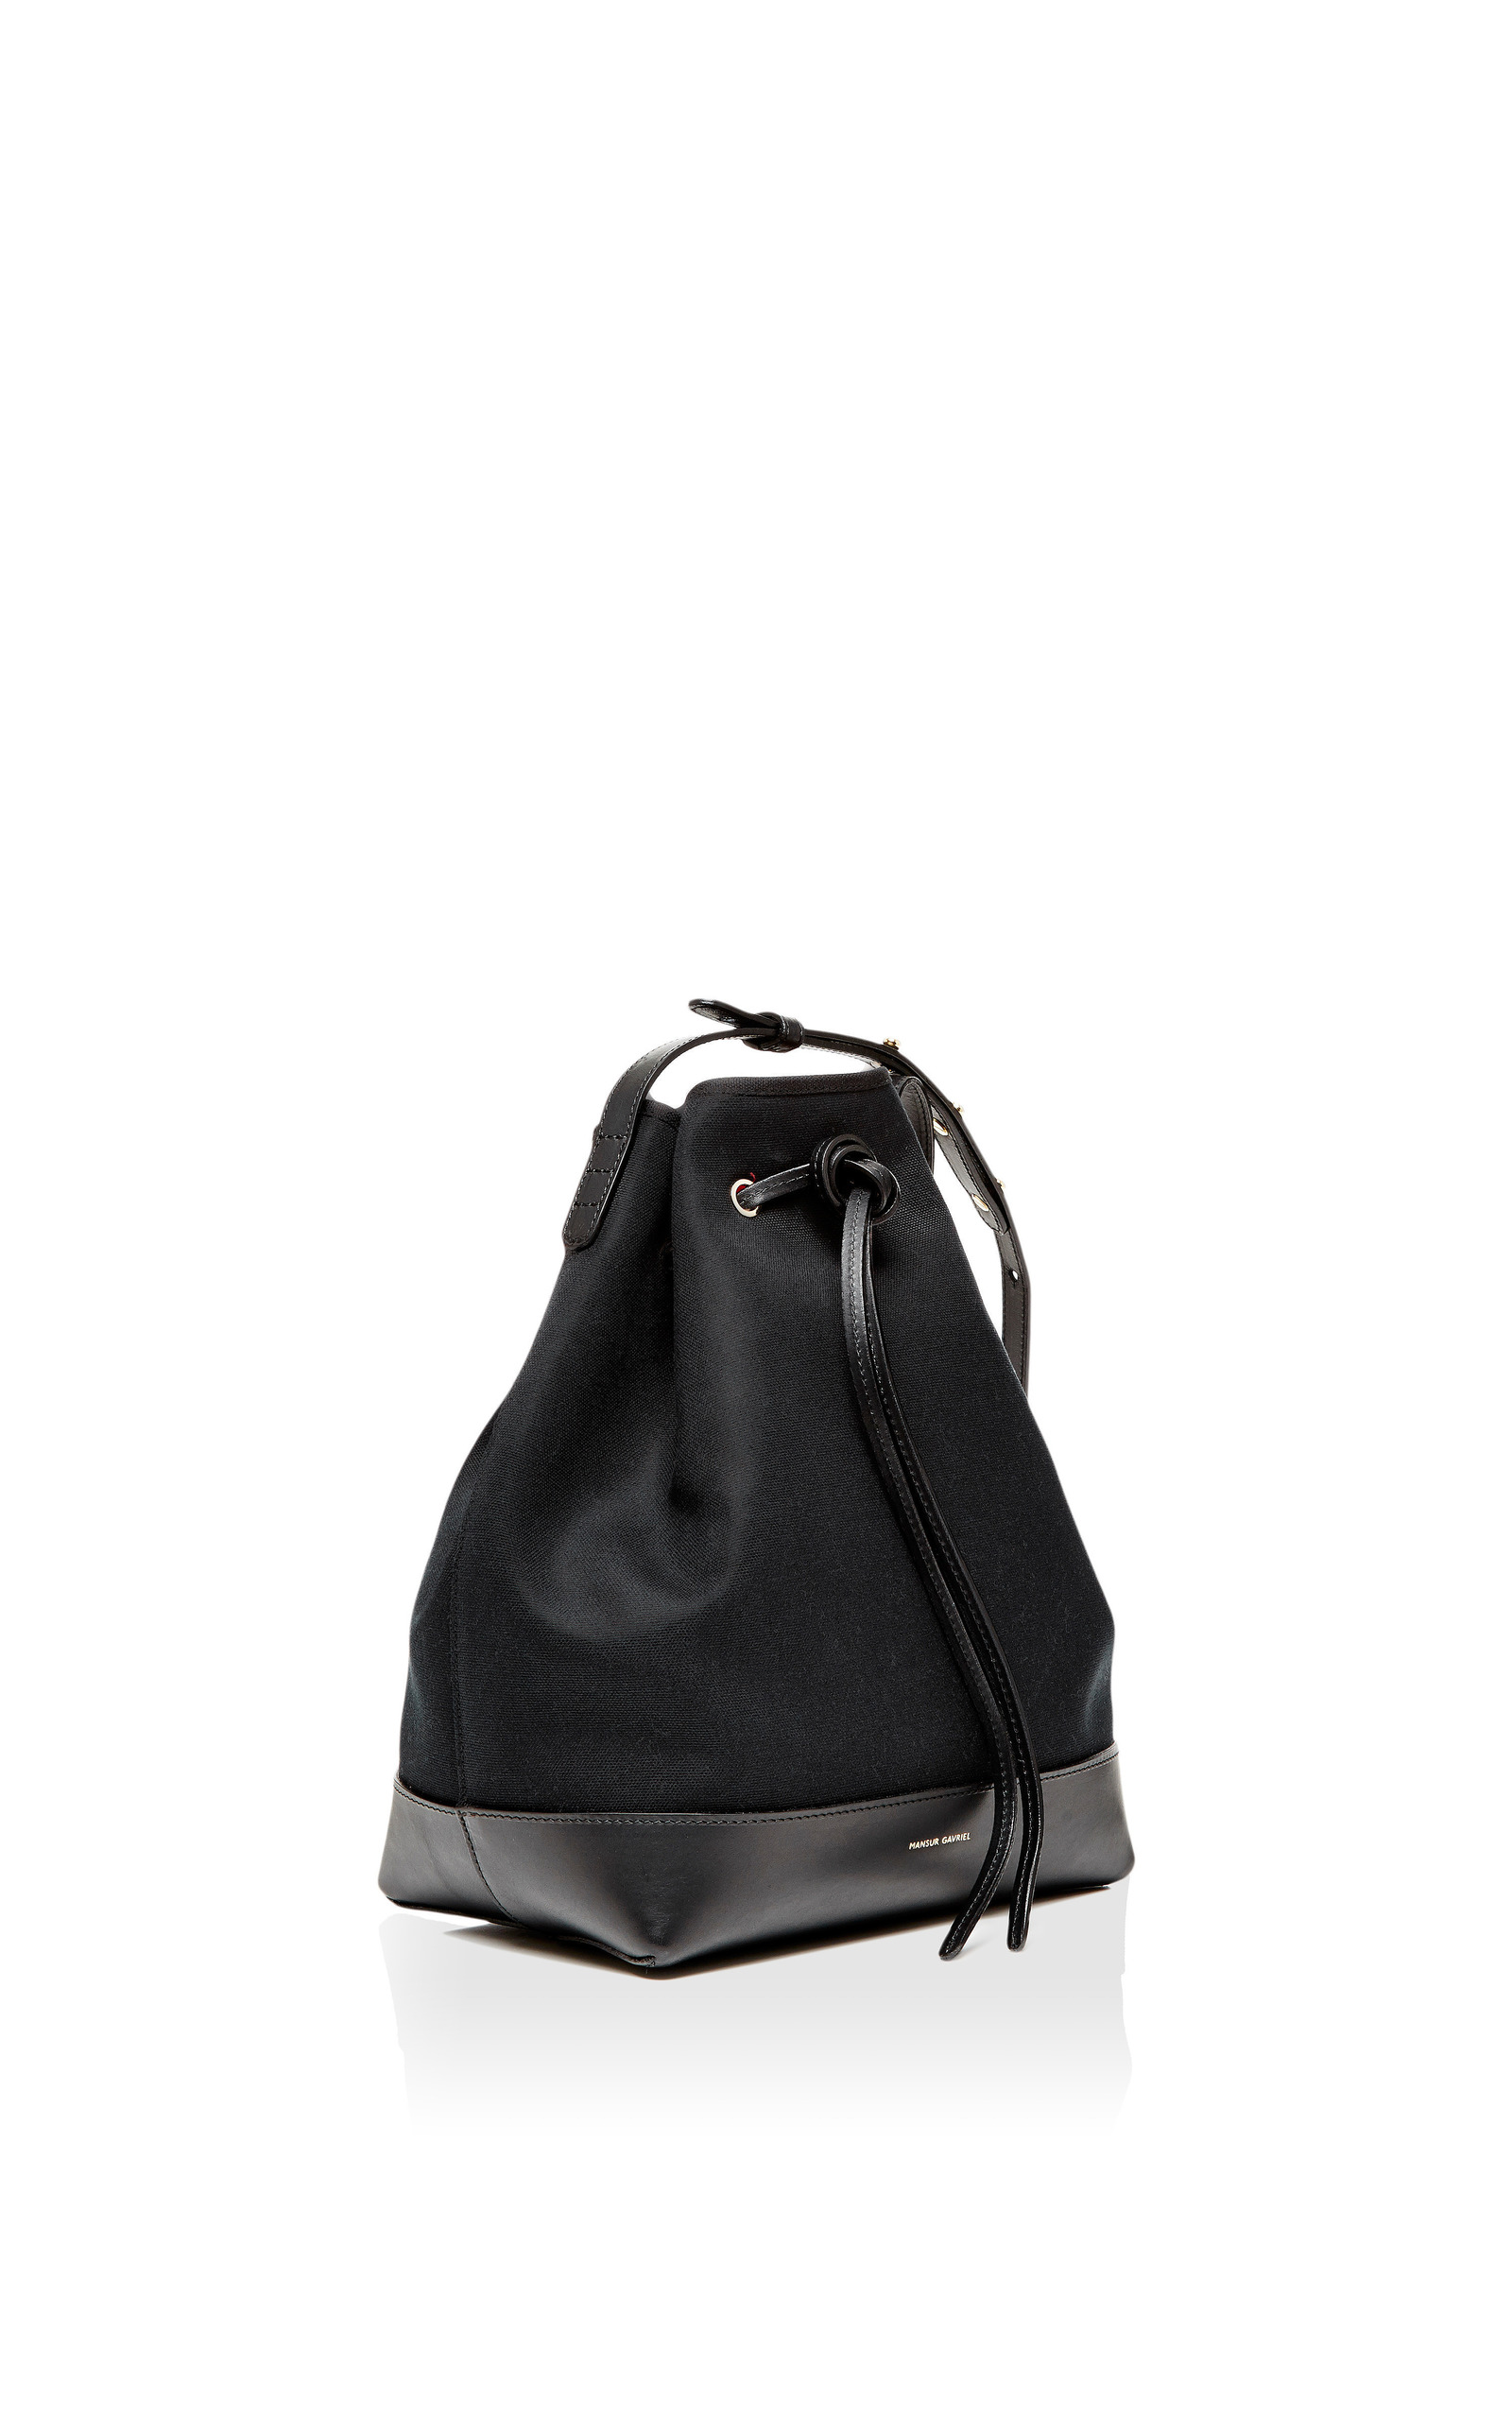 24329b2d7795 Mansur GavrielBlack Canvas and Leather Bucket Bag. CLOSE. Loading. Loading